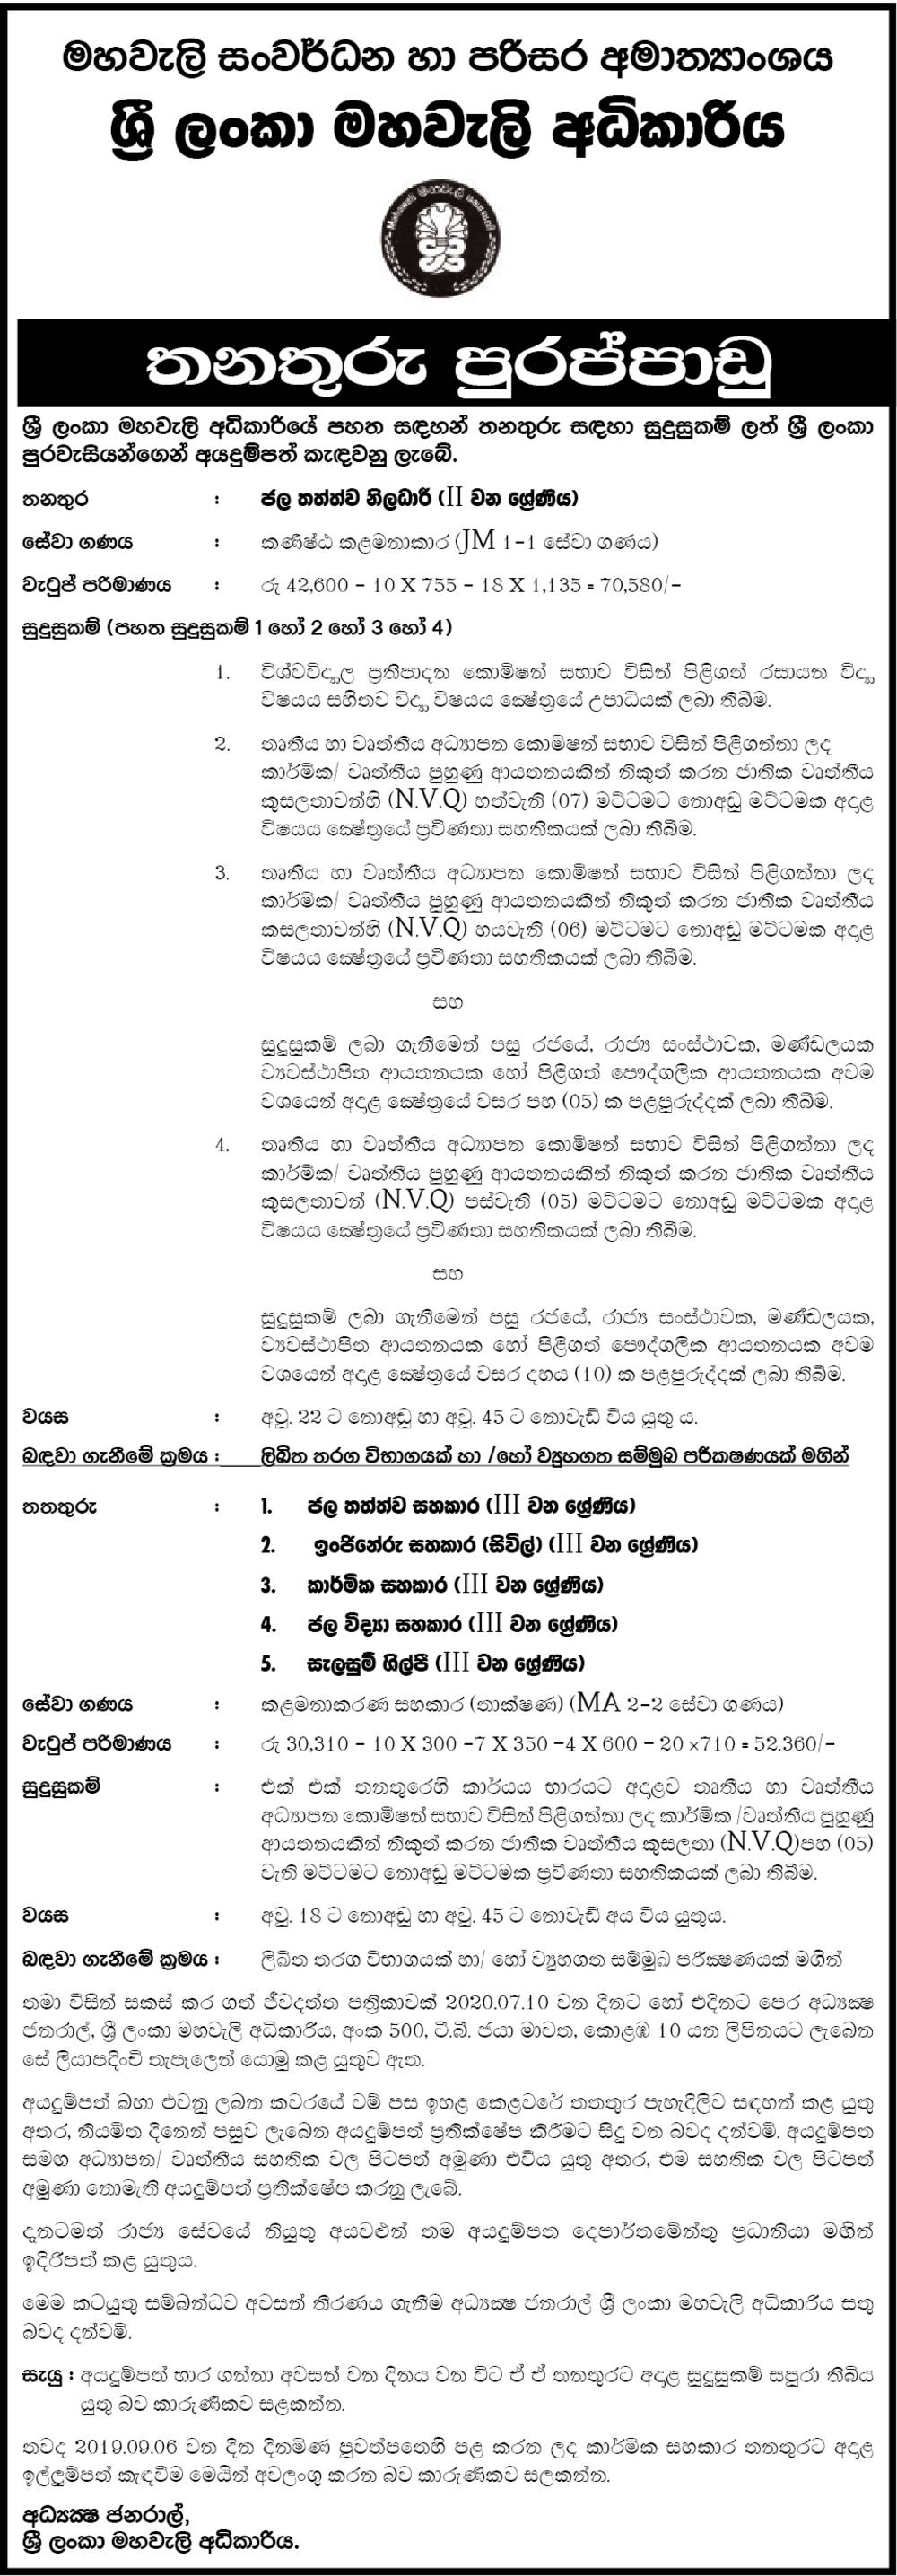 Water Quality Officer, Water Quality Assistant, Engineering Assistant, Technical Assistant, Hydrologist Assistant, Draftsman - Mahaweli Authority of Sri Lanka